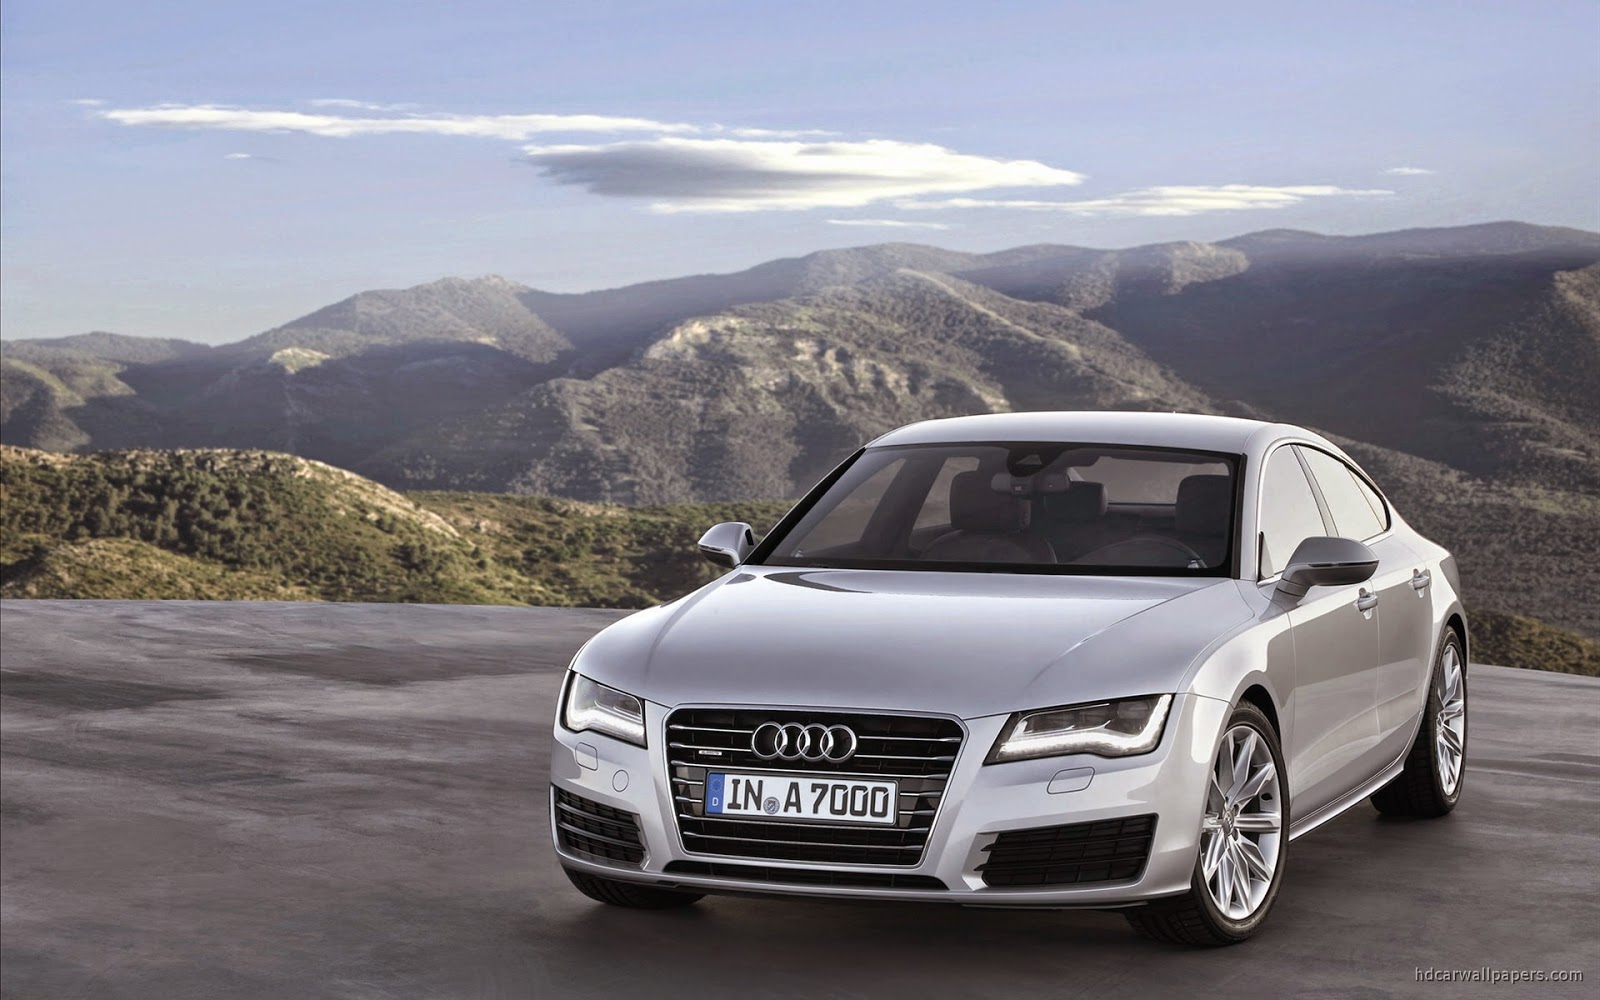 Audi Car HD wallpapers - HD Wallpapers - High Quality ...